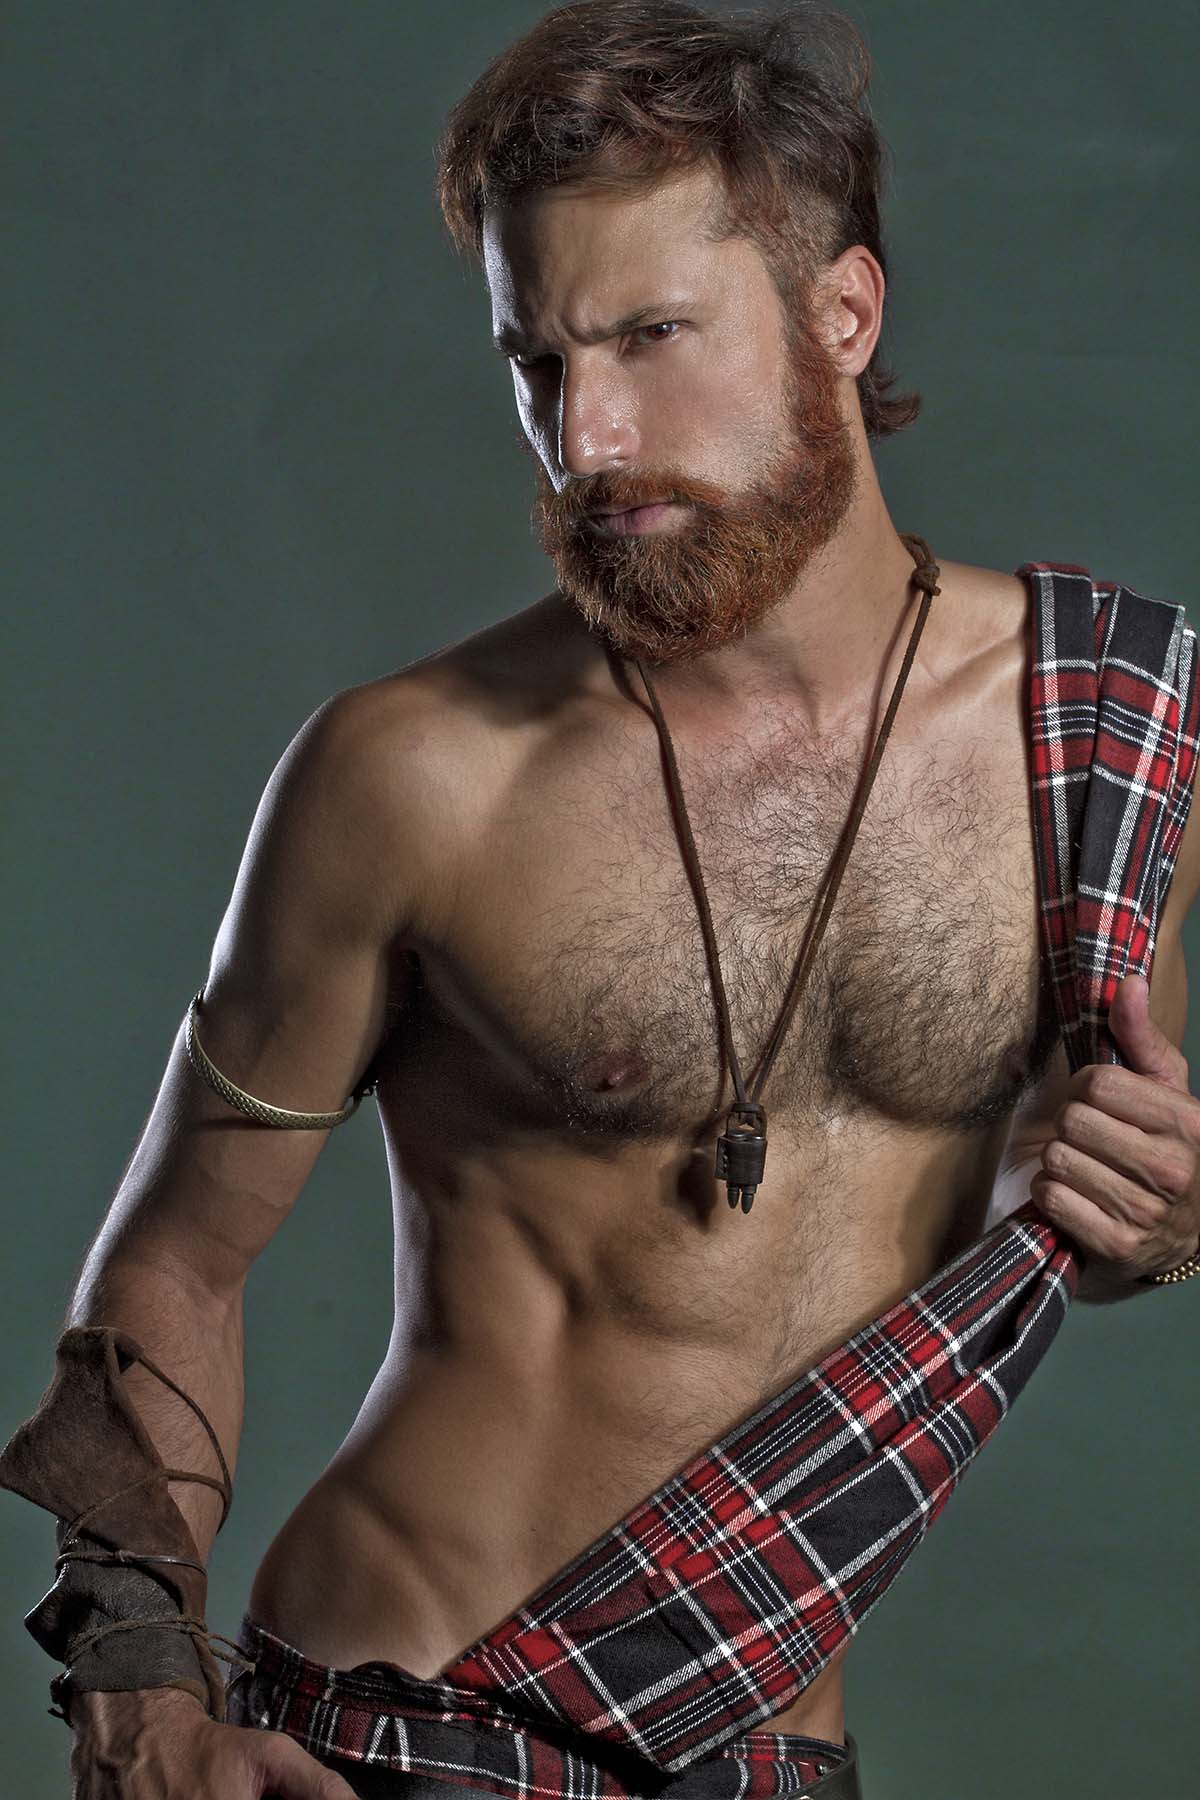 This Is Ronald Of Ronald Kilts